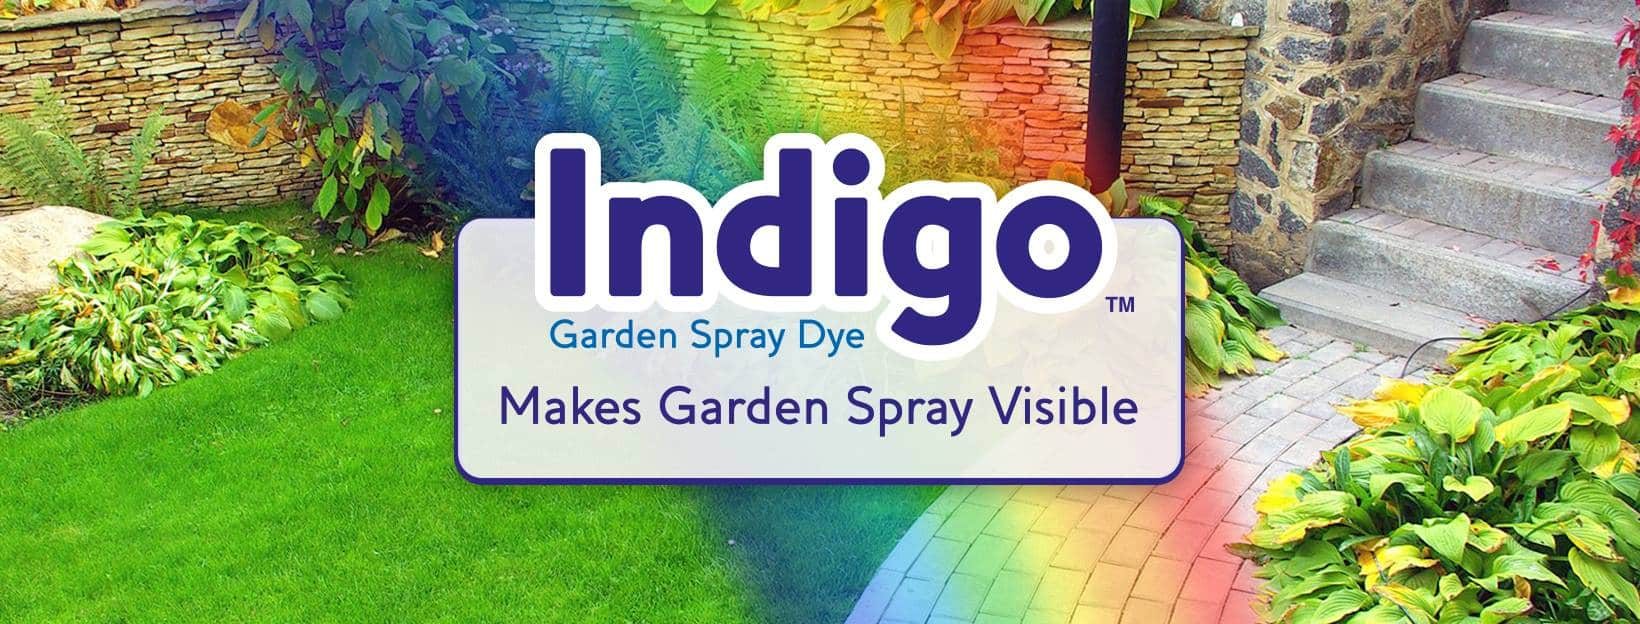 Dyeing to see where you have treated with a Garden Sprayer